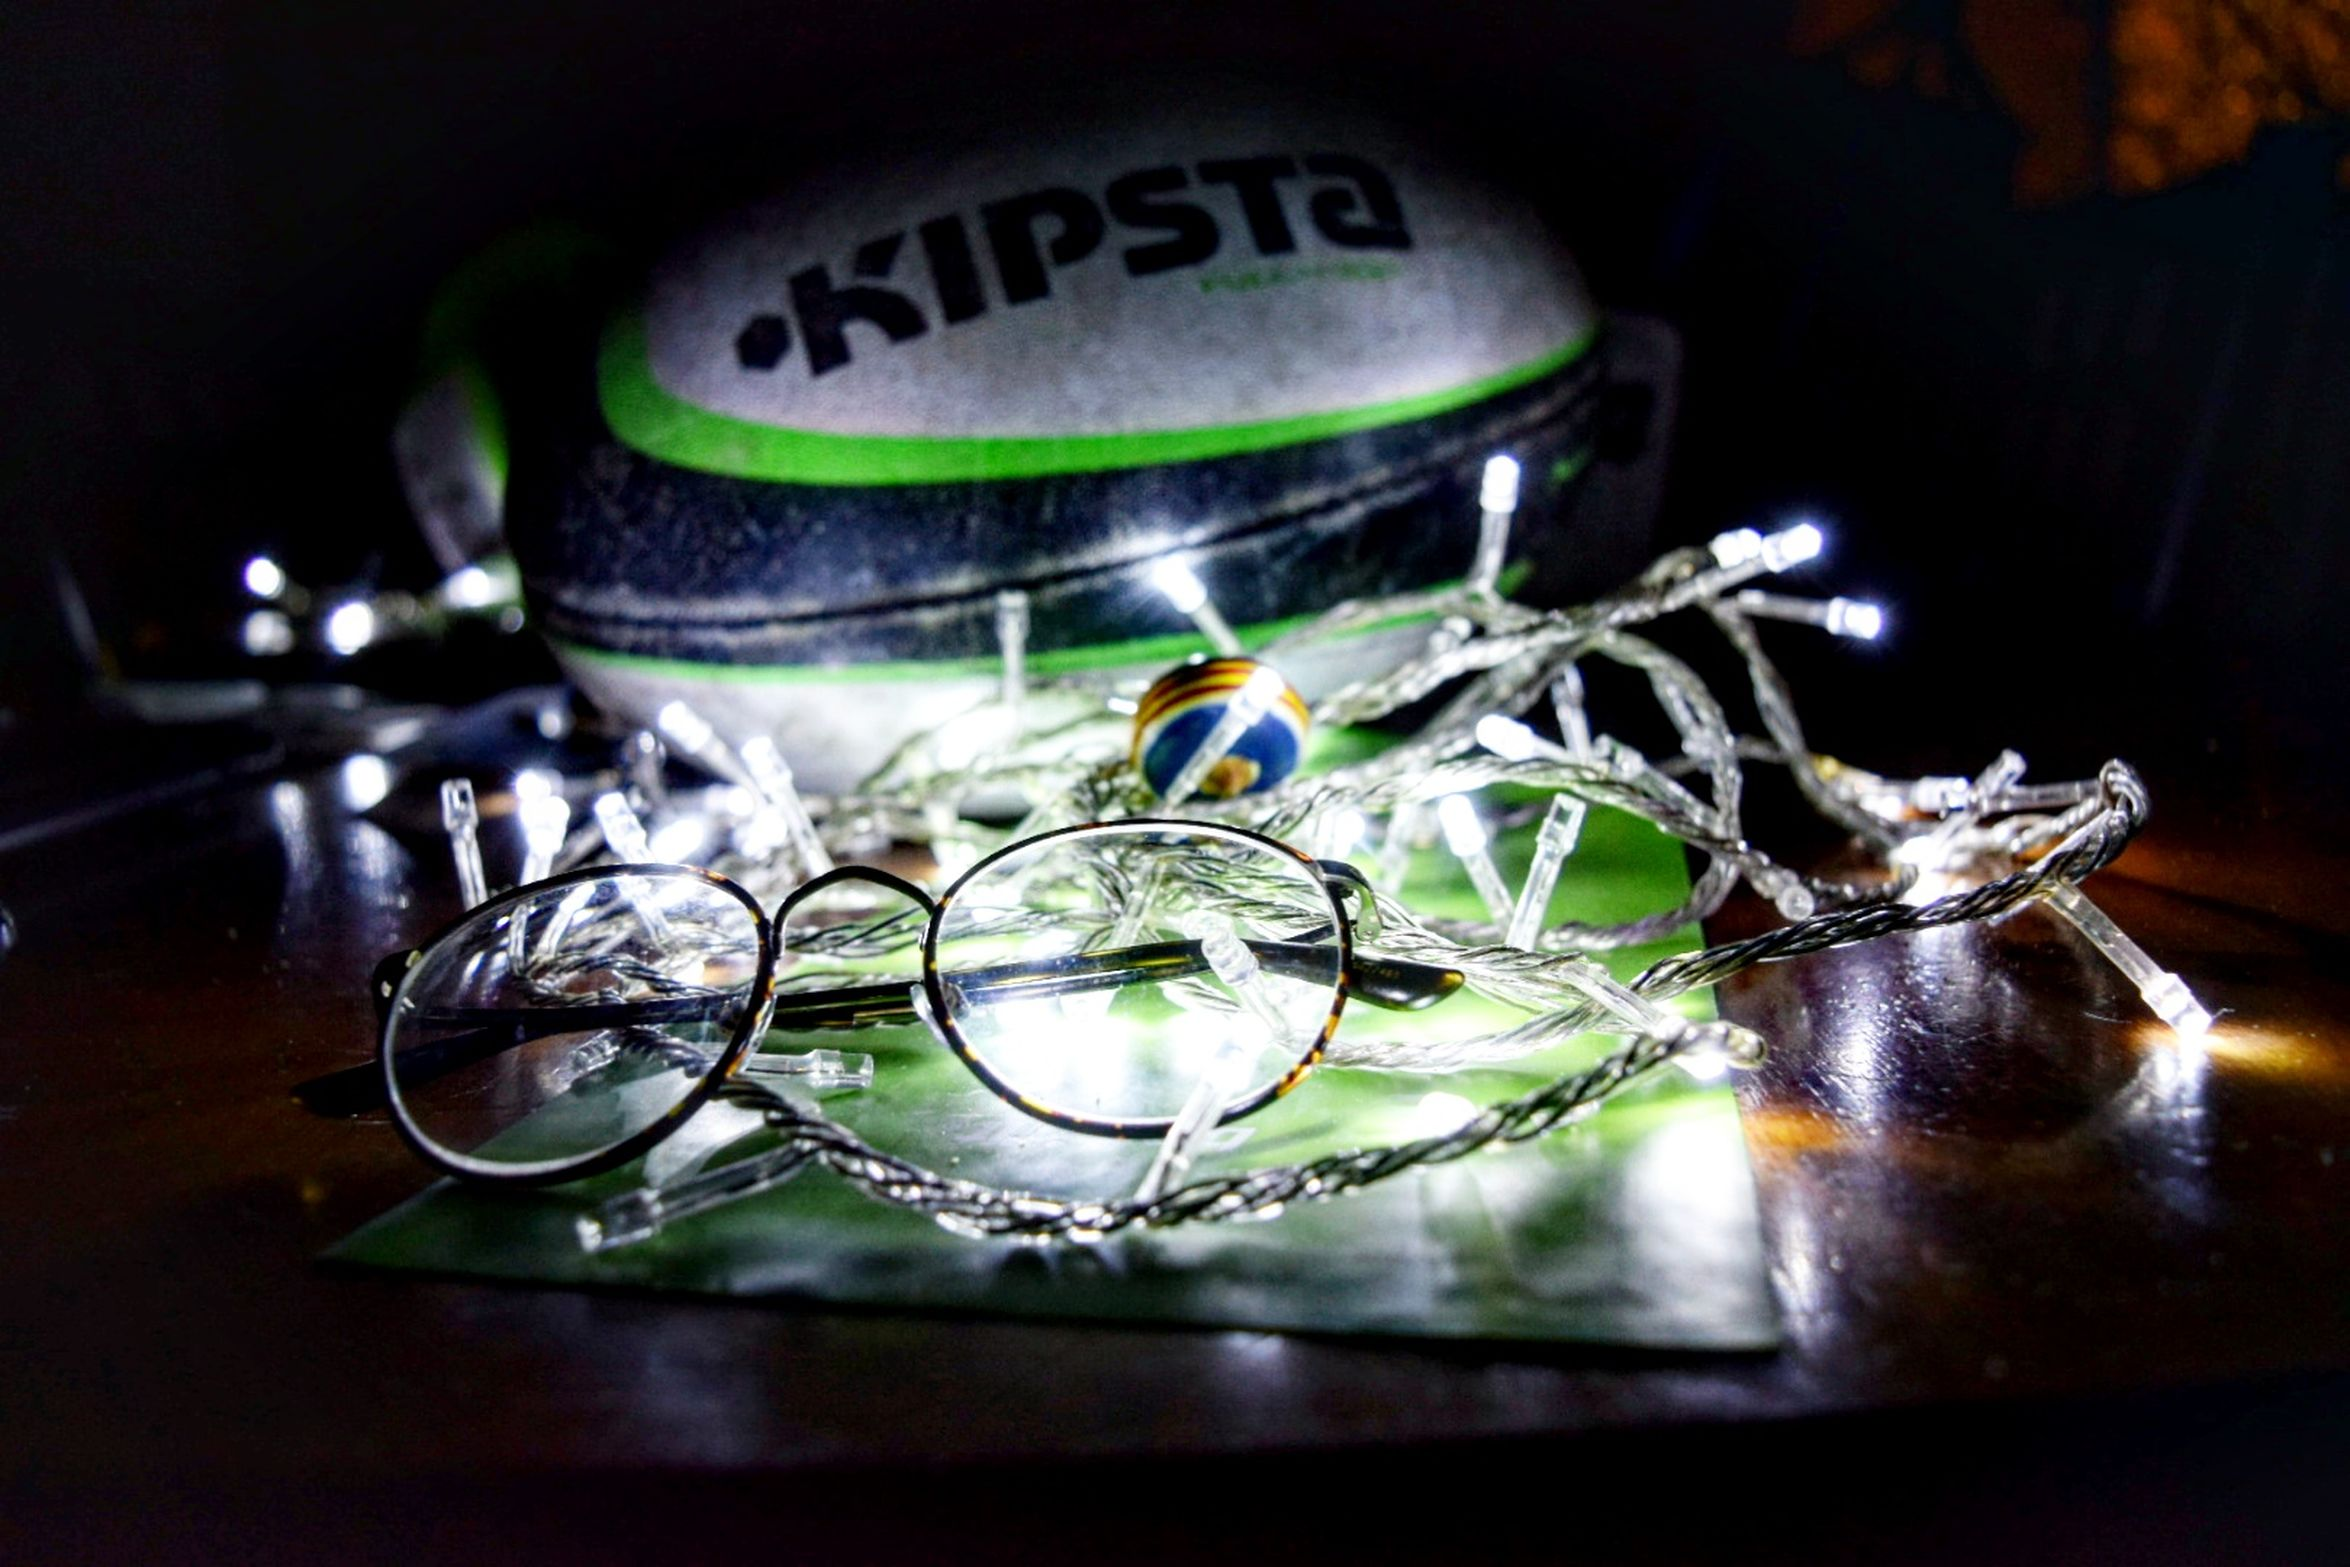 Kripsta Rugby Lentes Christmas Lights Close-up No People Indoors  First Eyeem Photo